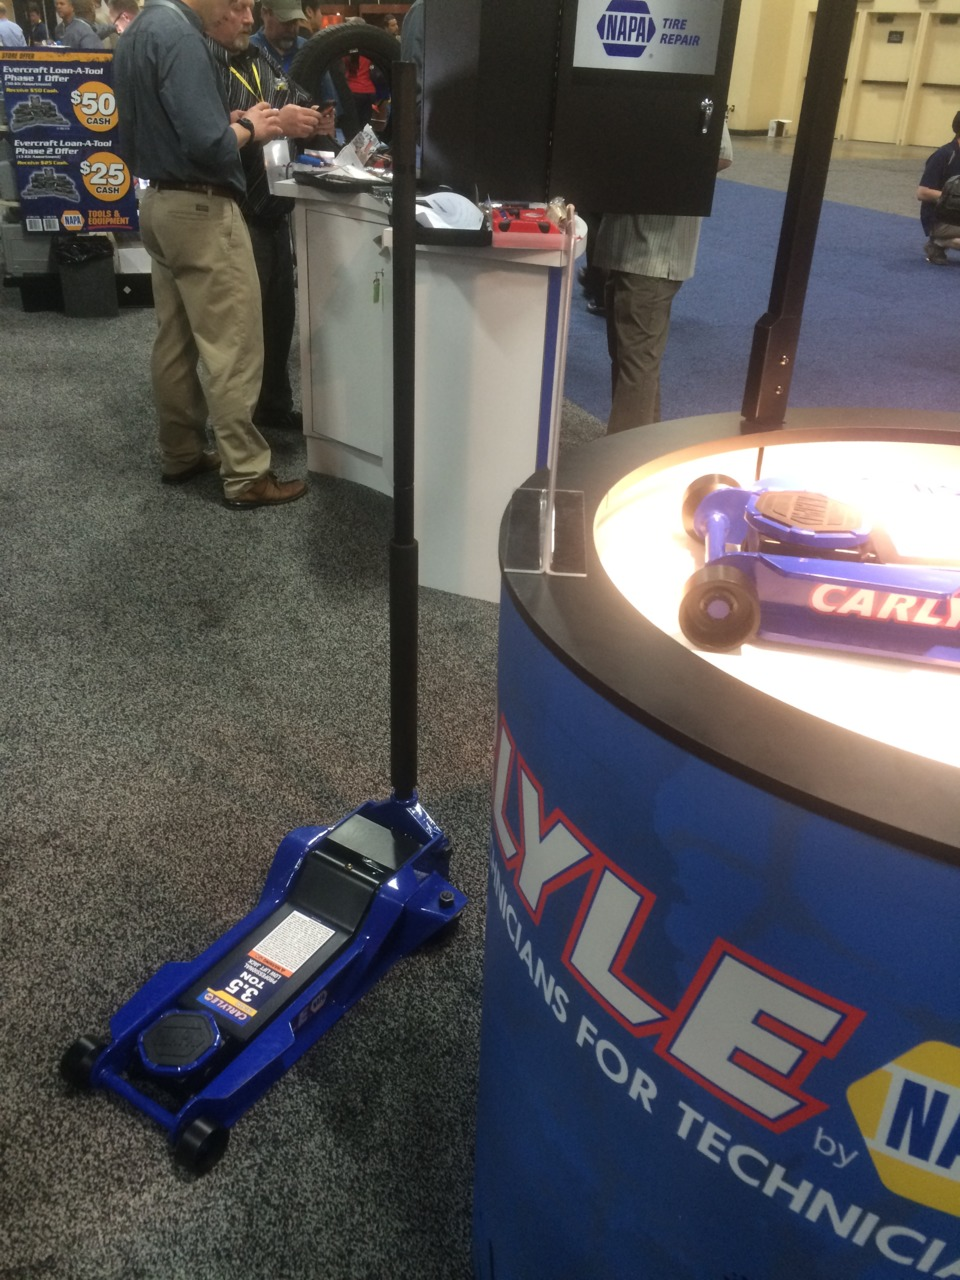 2015 NAPA AUTO PARTS Expo Media Gallery